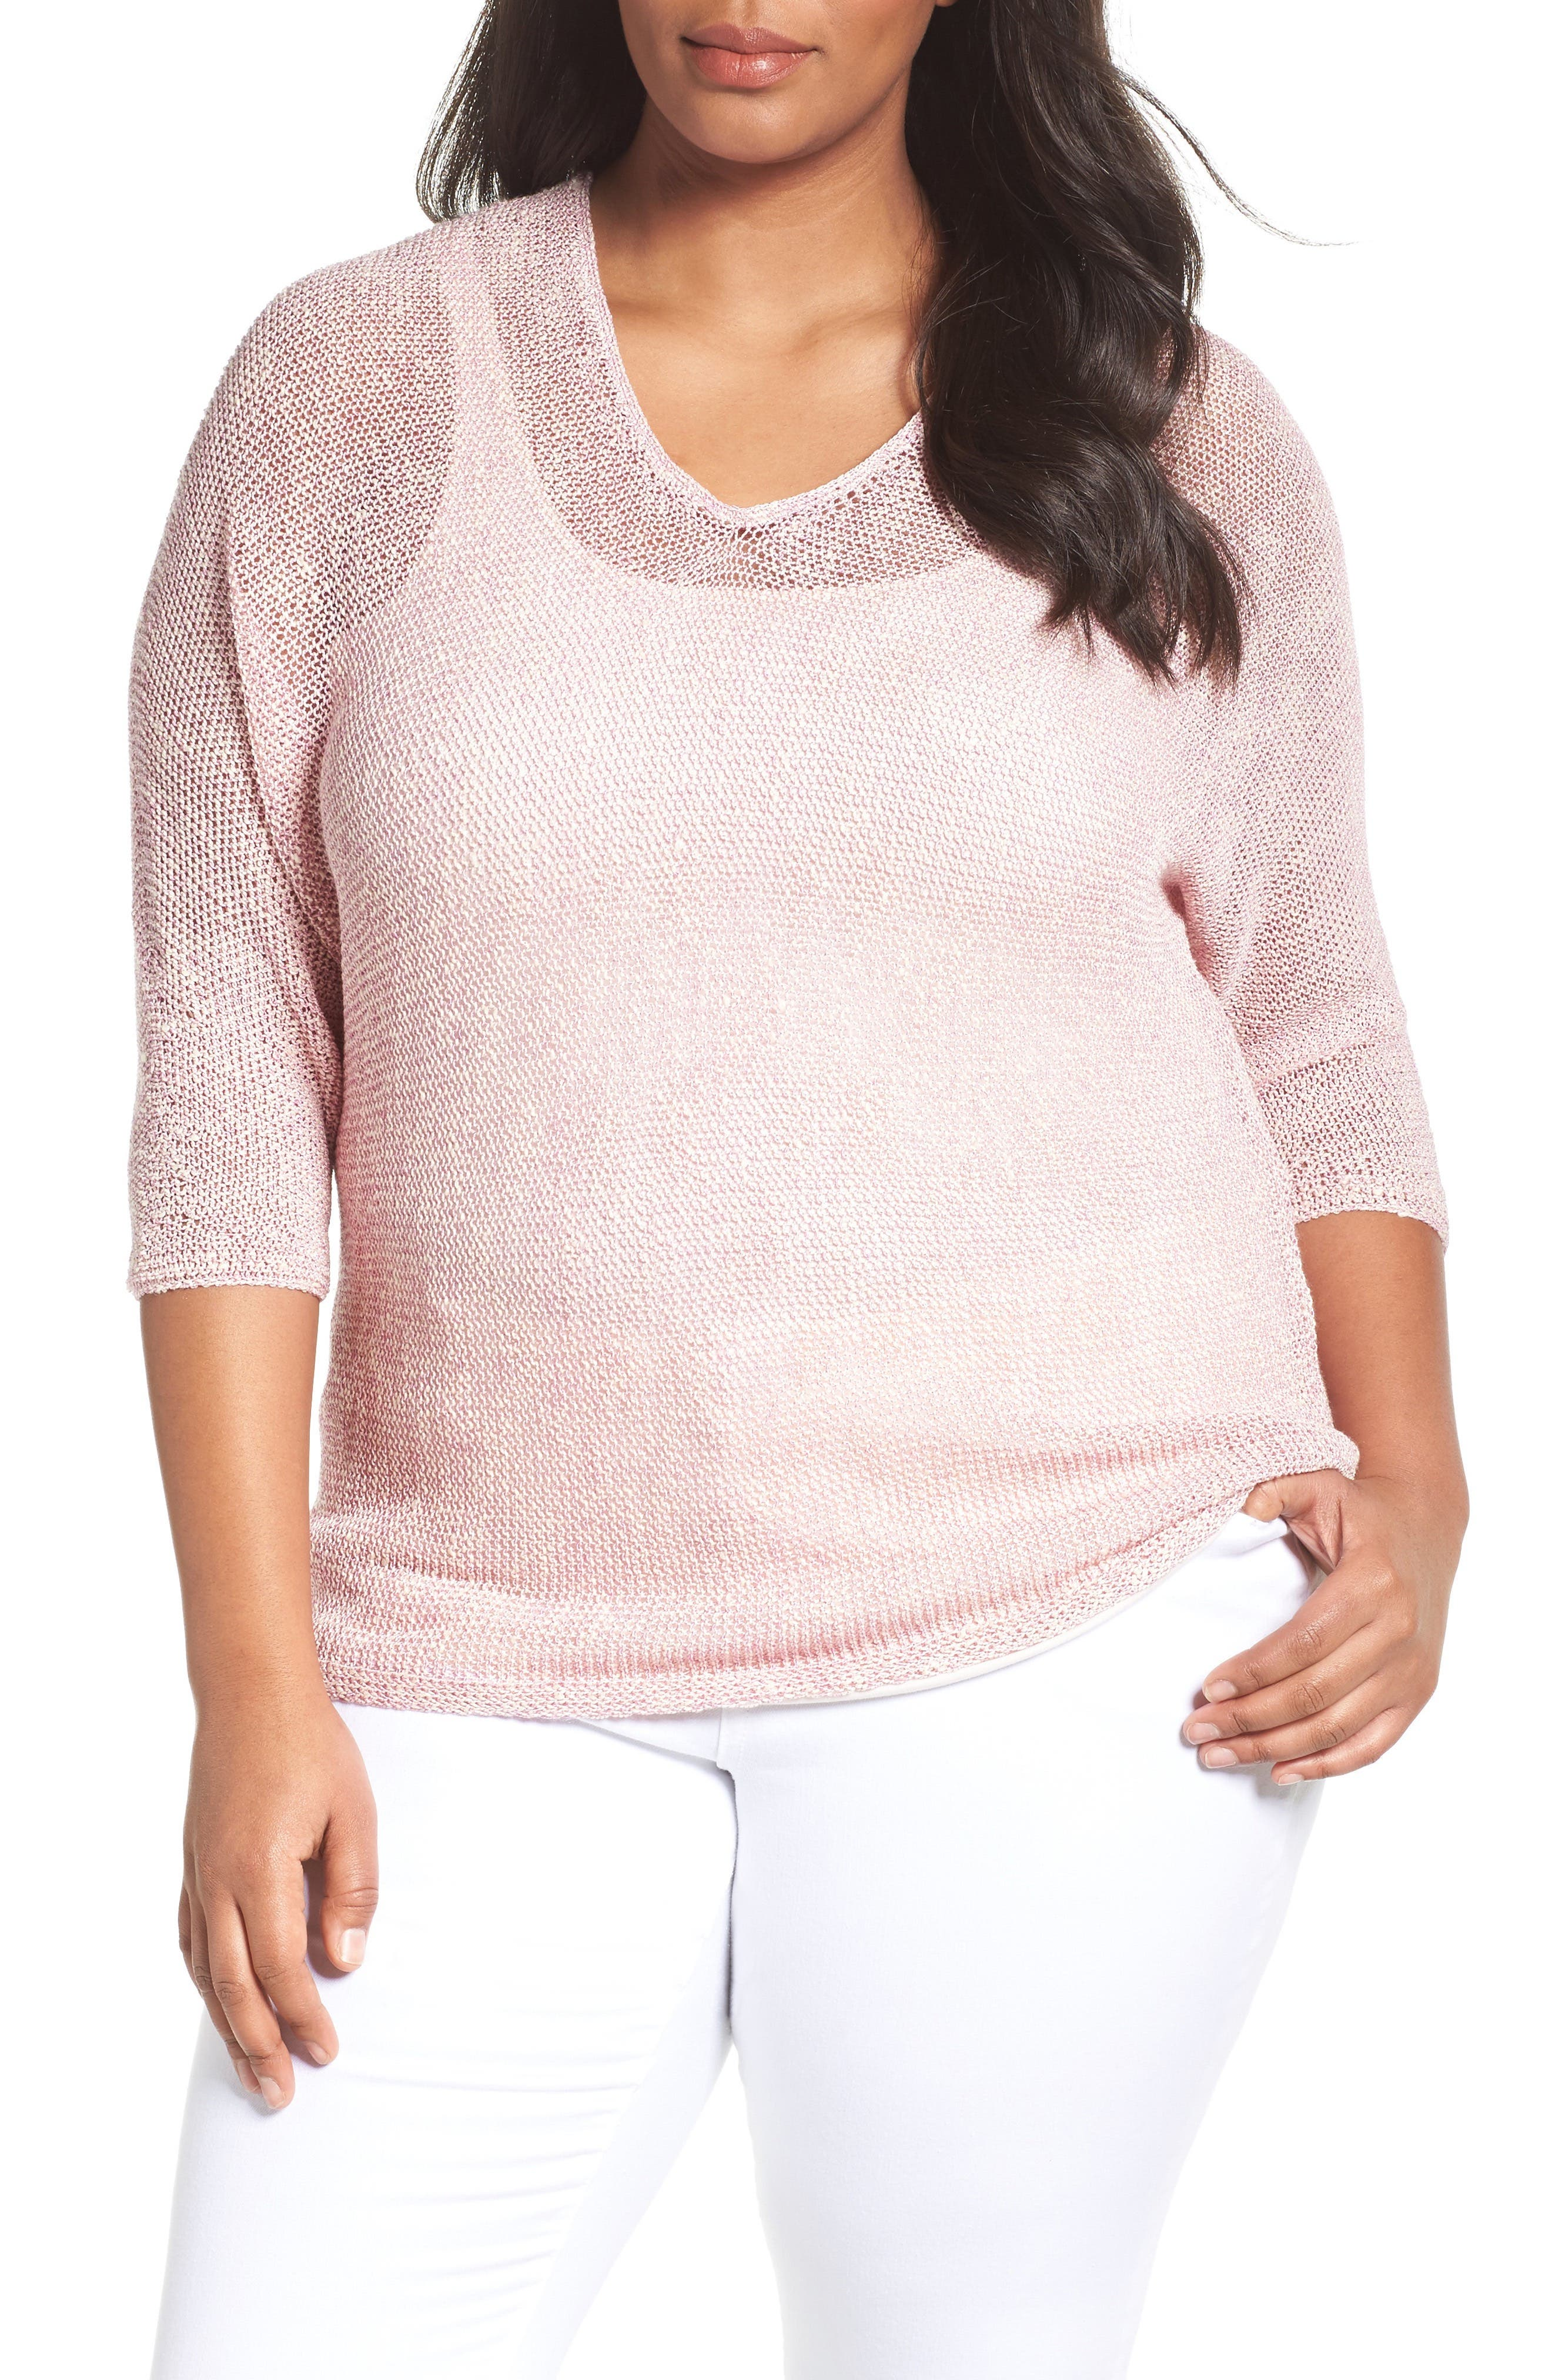 NIC+ZOE Sunkissed Sheer Linen Blend Pullover, Main, color, 300